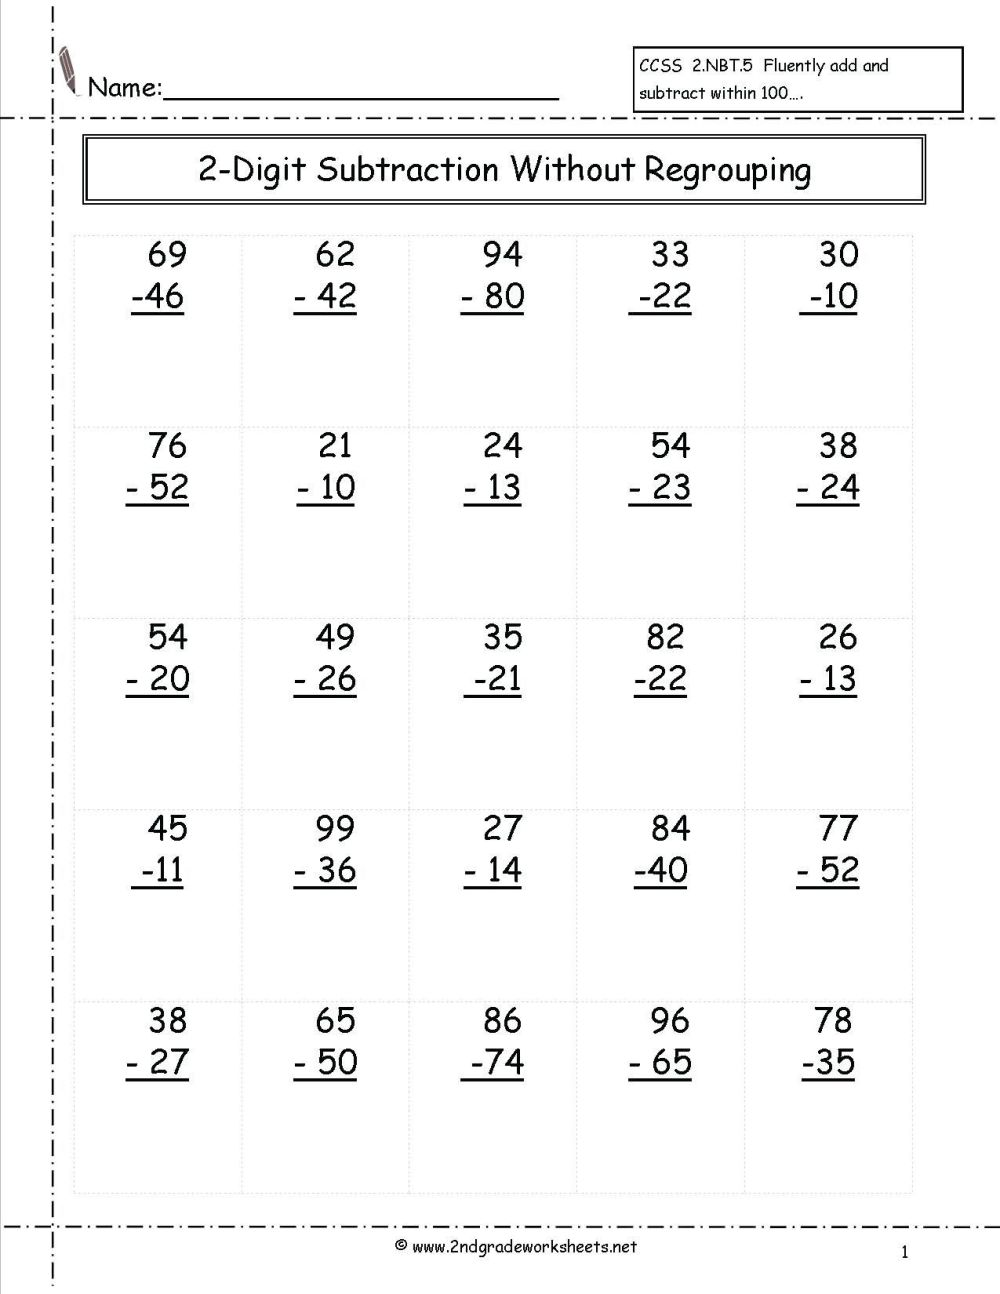 medium resolution of Subtraction Worksheets for Grade 1 Of 5 Free Math Worksheets First Grade 1 Addition  Add In Columns 2 Digit Plus 1 Digit No Regroupi - Free Templates